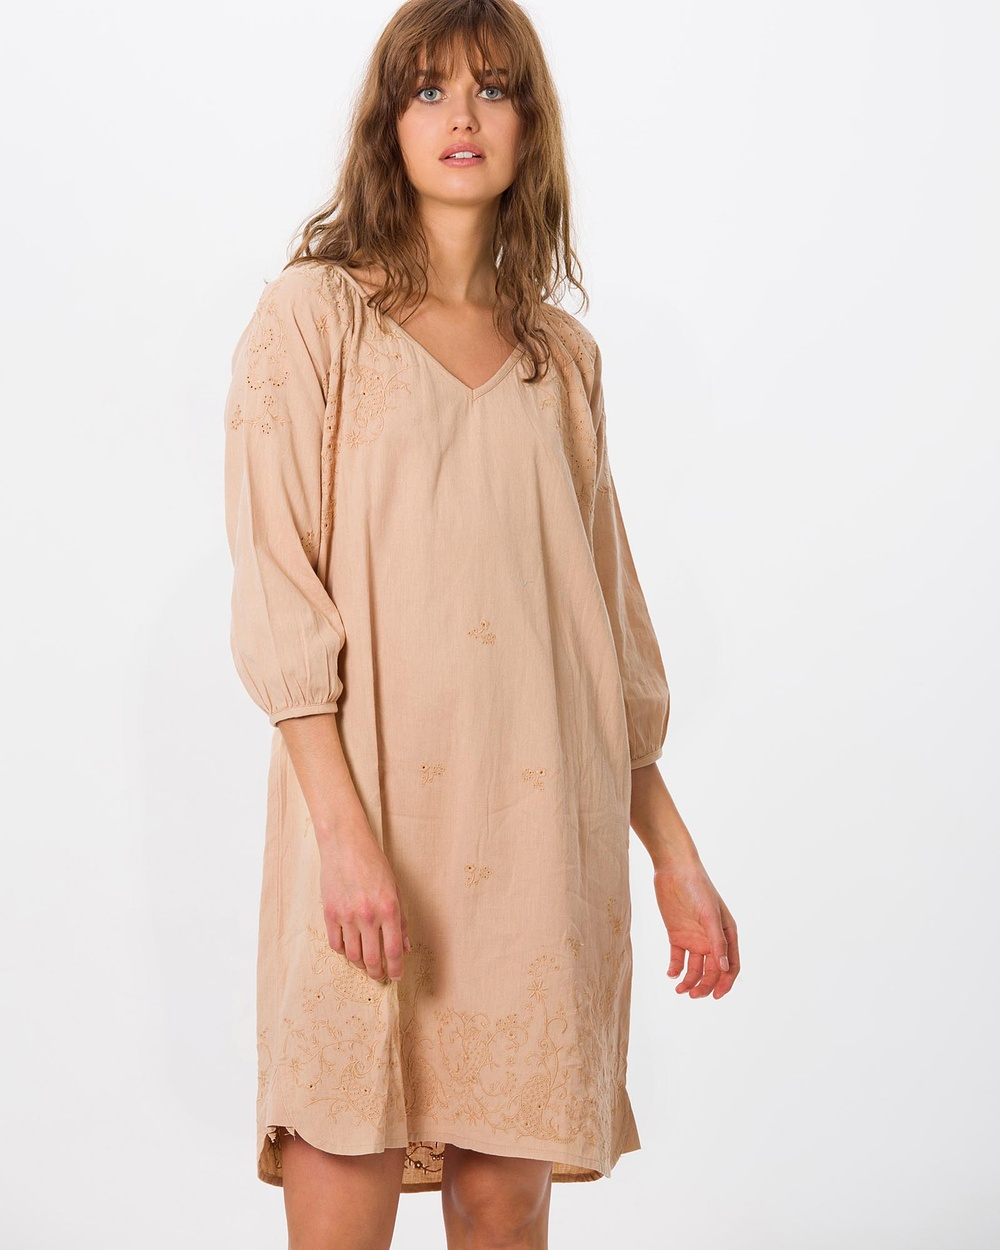 Kaja Clothing Chamomile Roisin Dress